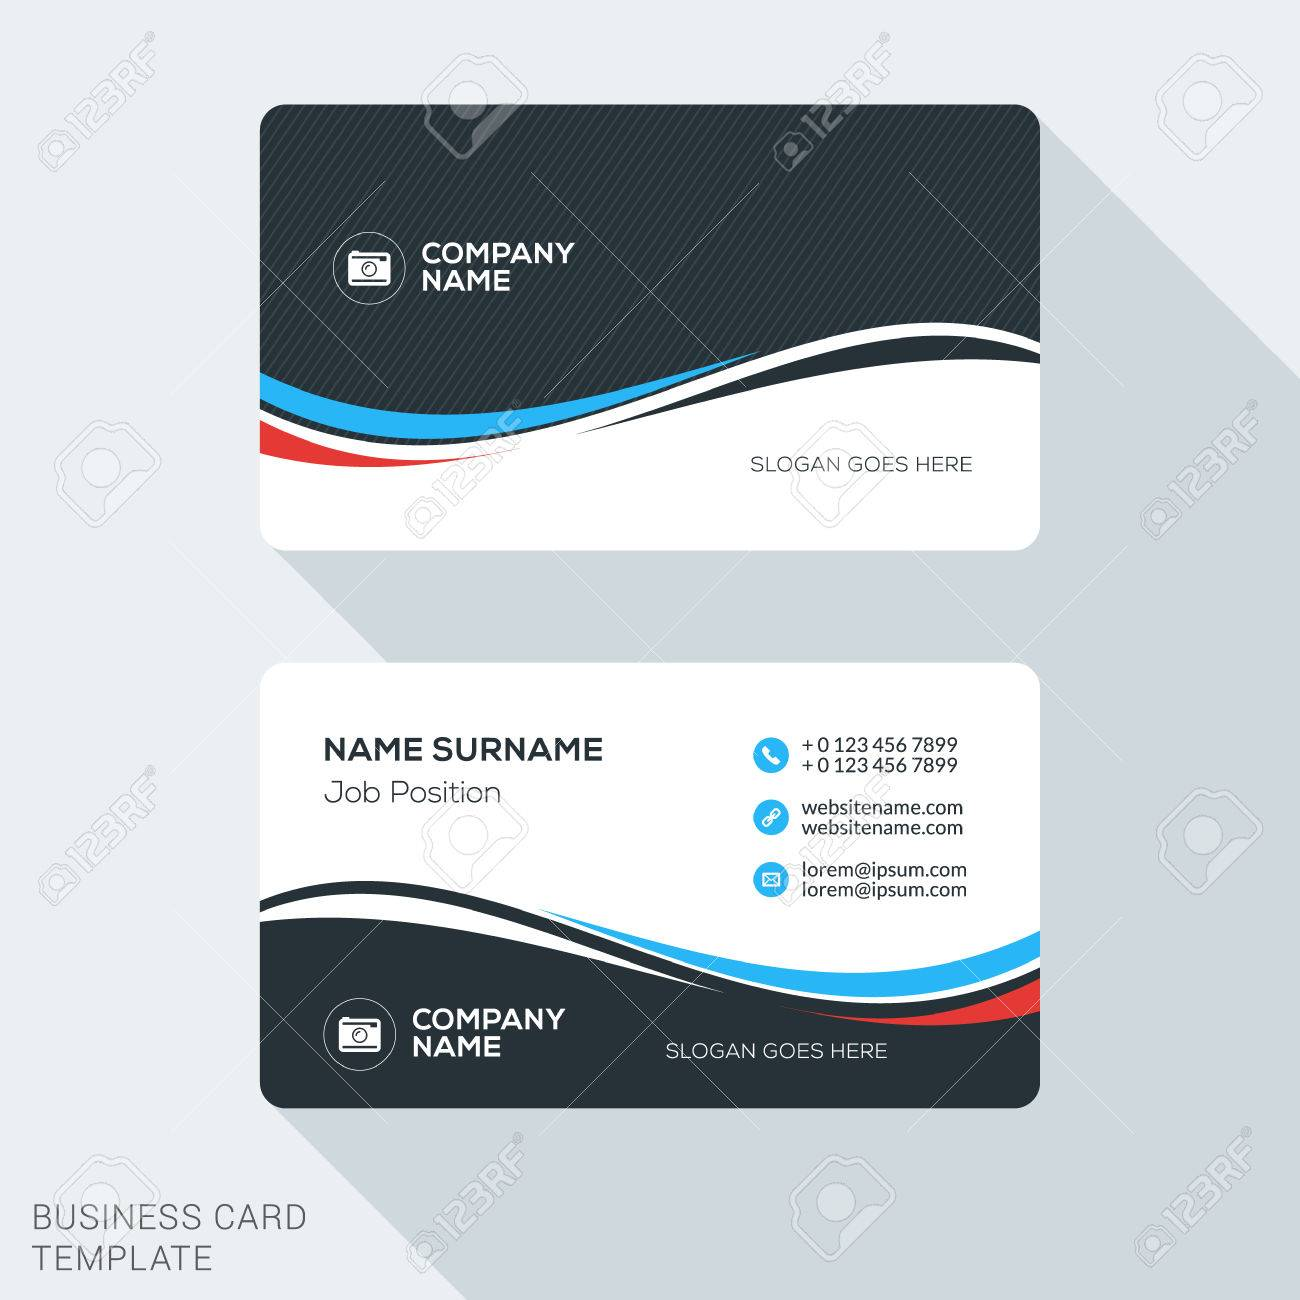 Business card template html image collections card design and card fine business card html template ideas business card ideas business card templates html image collections card fbccfo Choice Image